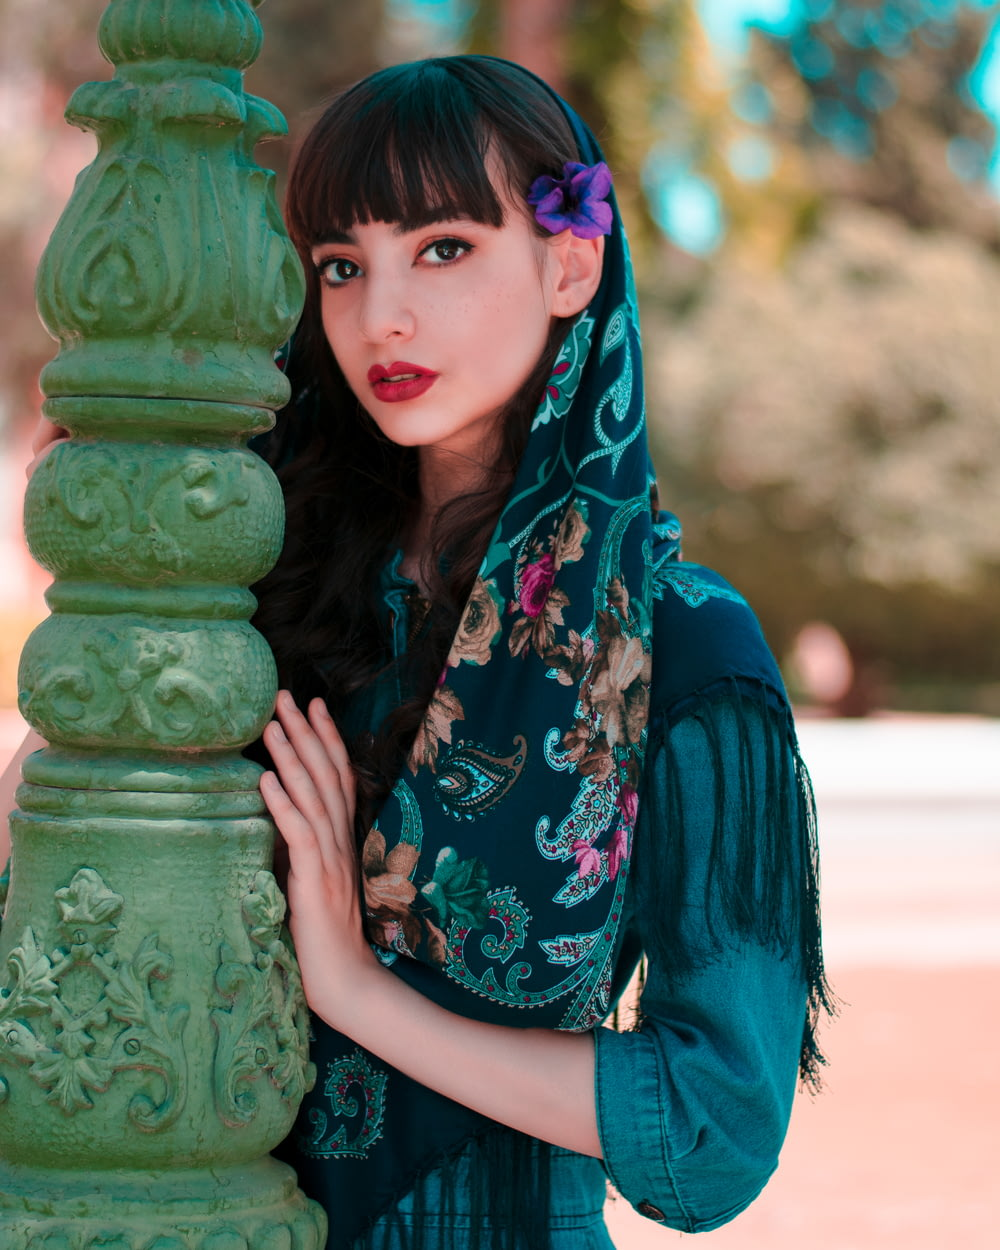 woman in blue and green floral scarf standing beside green concrete post during daytime